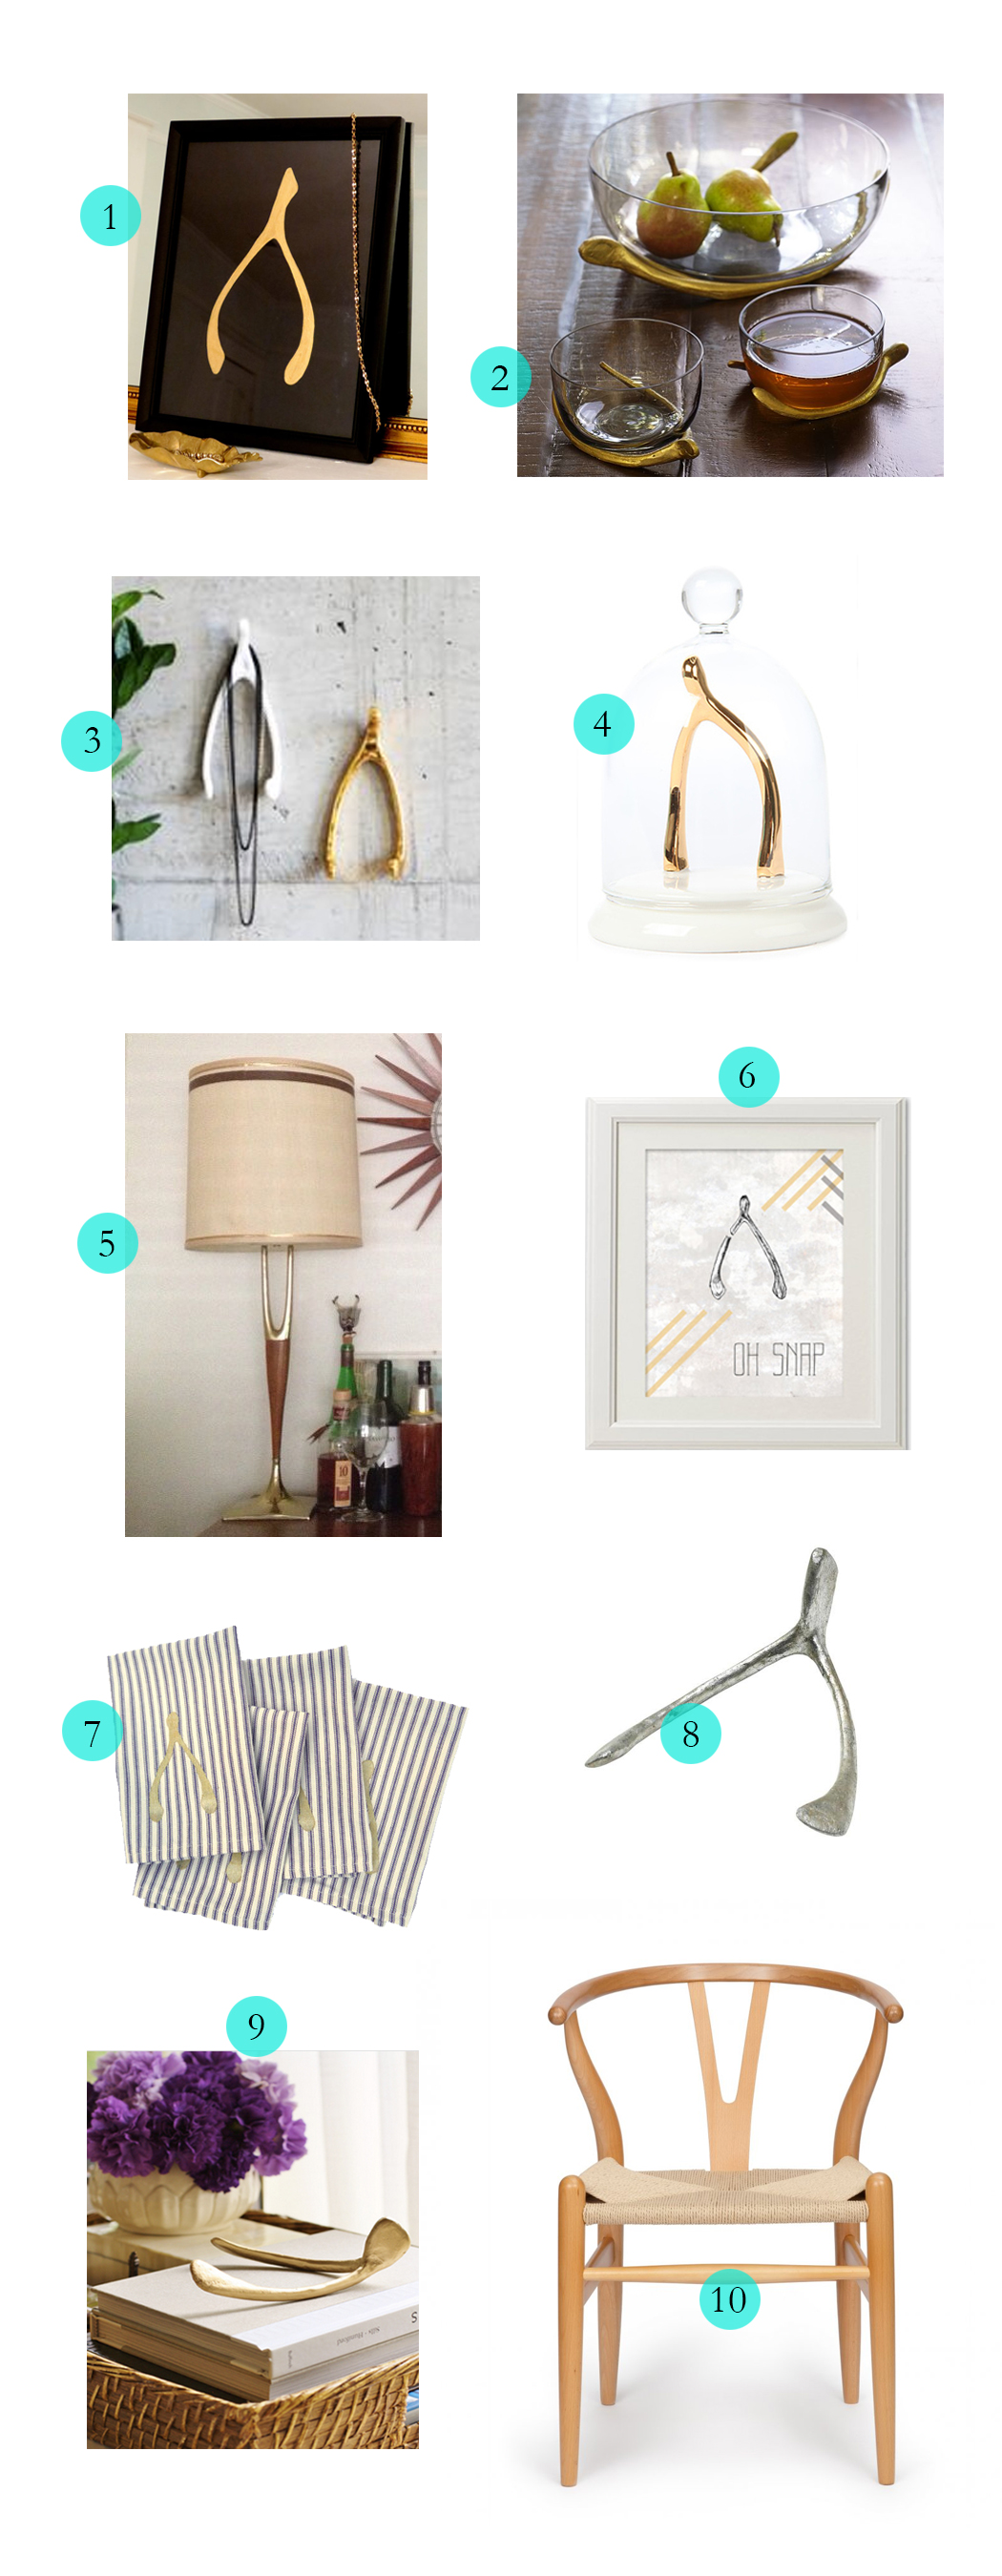 Tuesday Ten: Wishbone Decor on the Havenly Blog